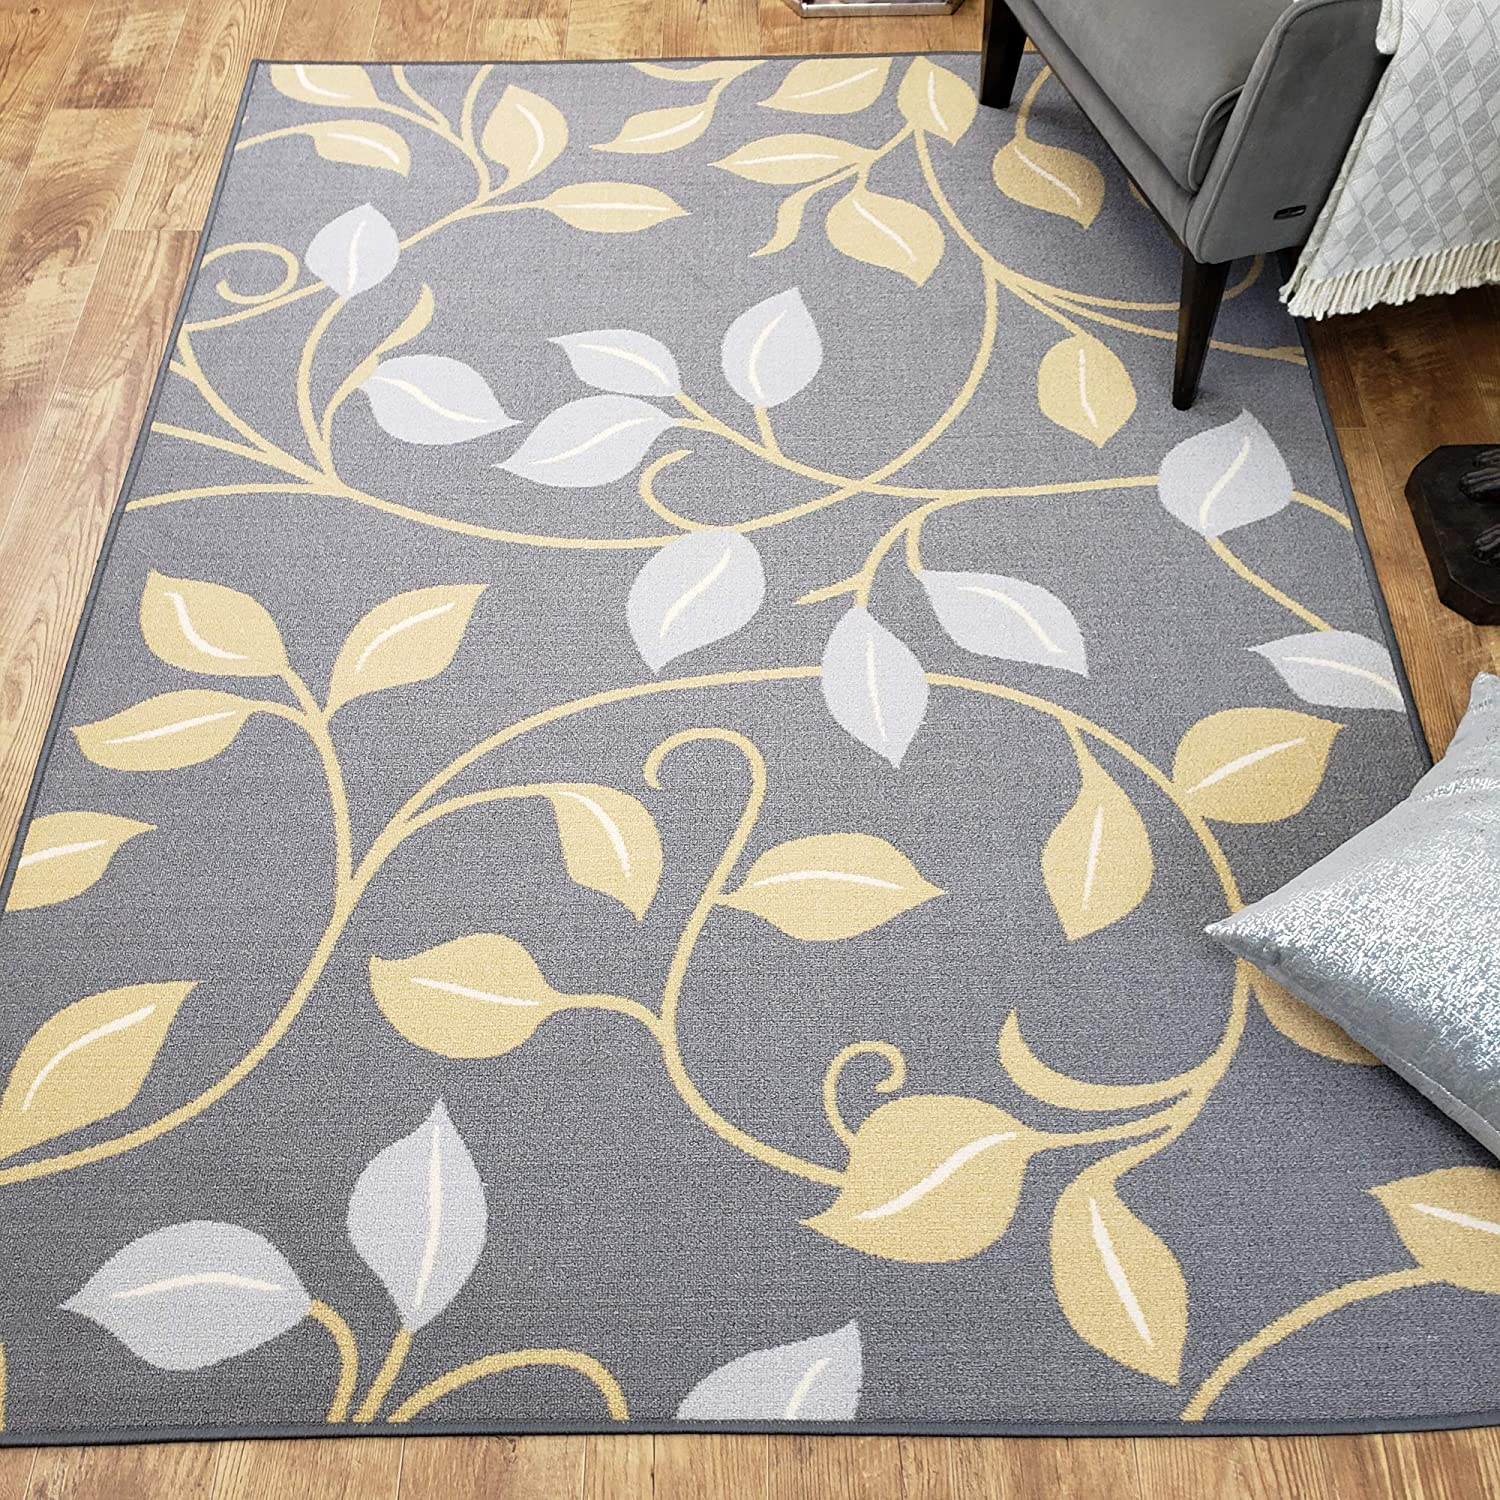 Area Rug 5x7 Gray Floral Kitchen Rugs and mats | Rubber Backed Non Skid Rug  Living Room Bathroom Nursery Home Decor Under Door Entryway Floor Non Slip  ...